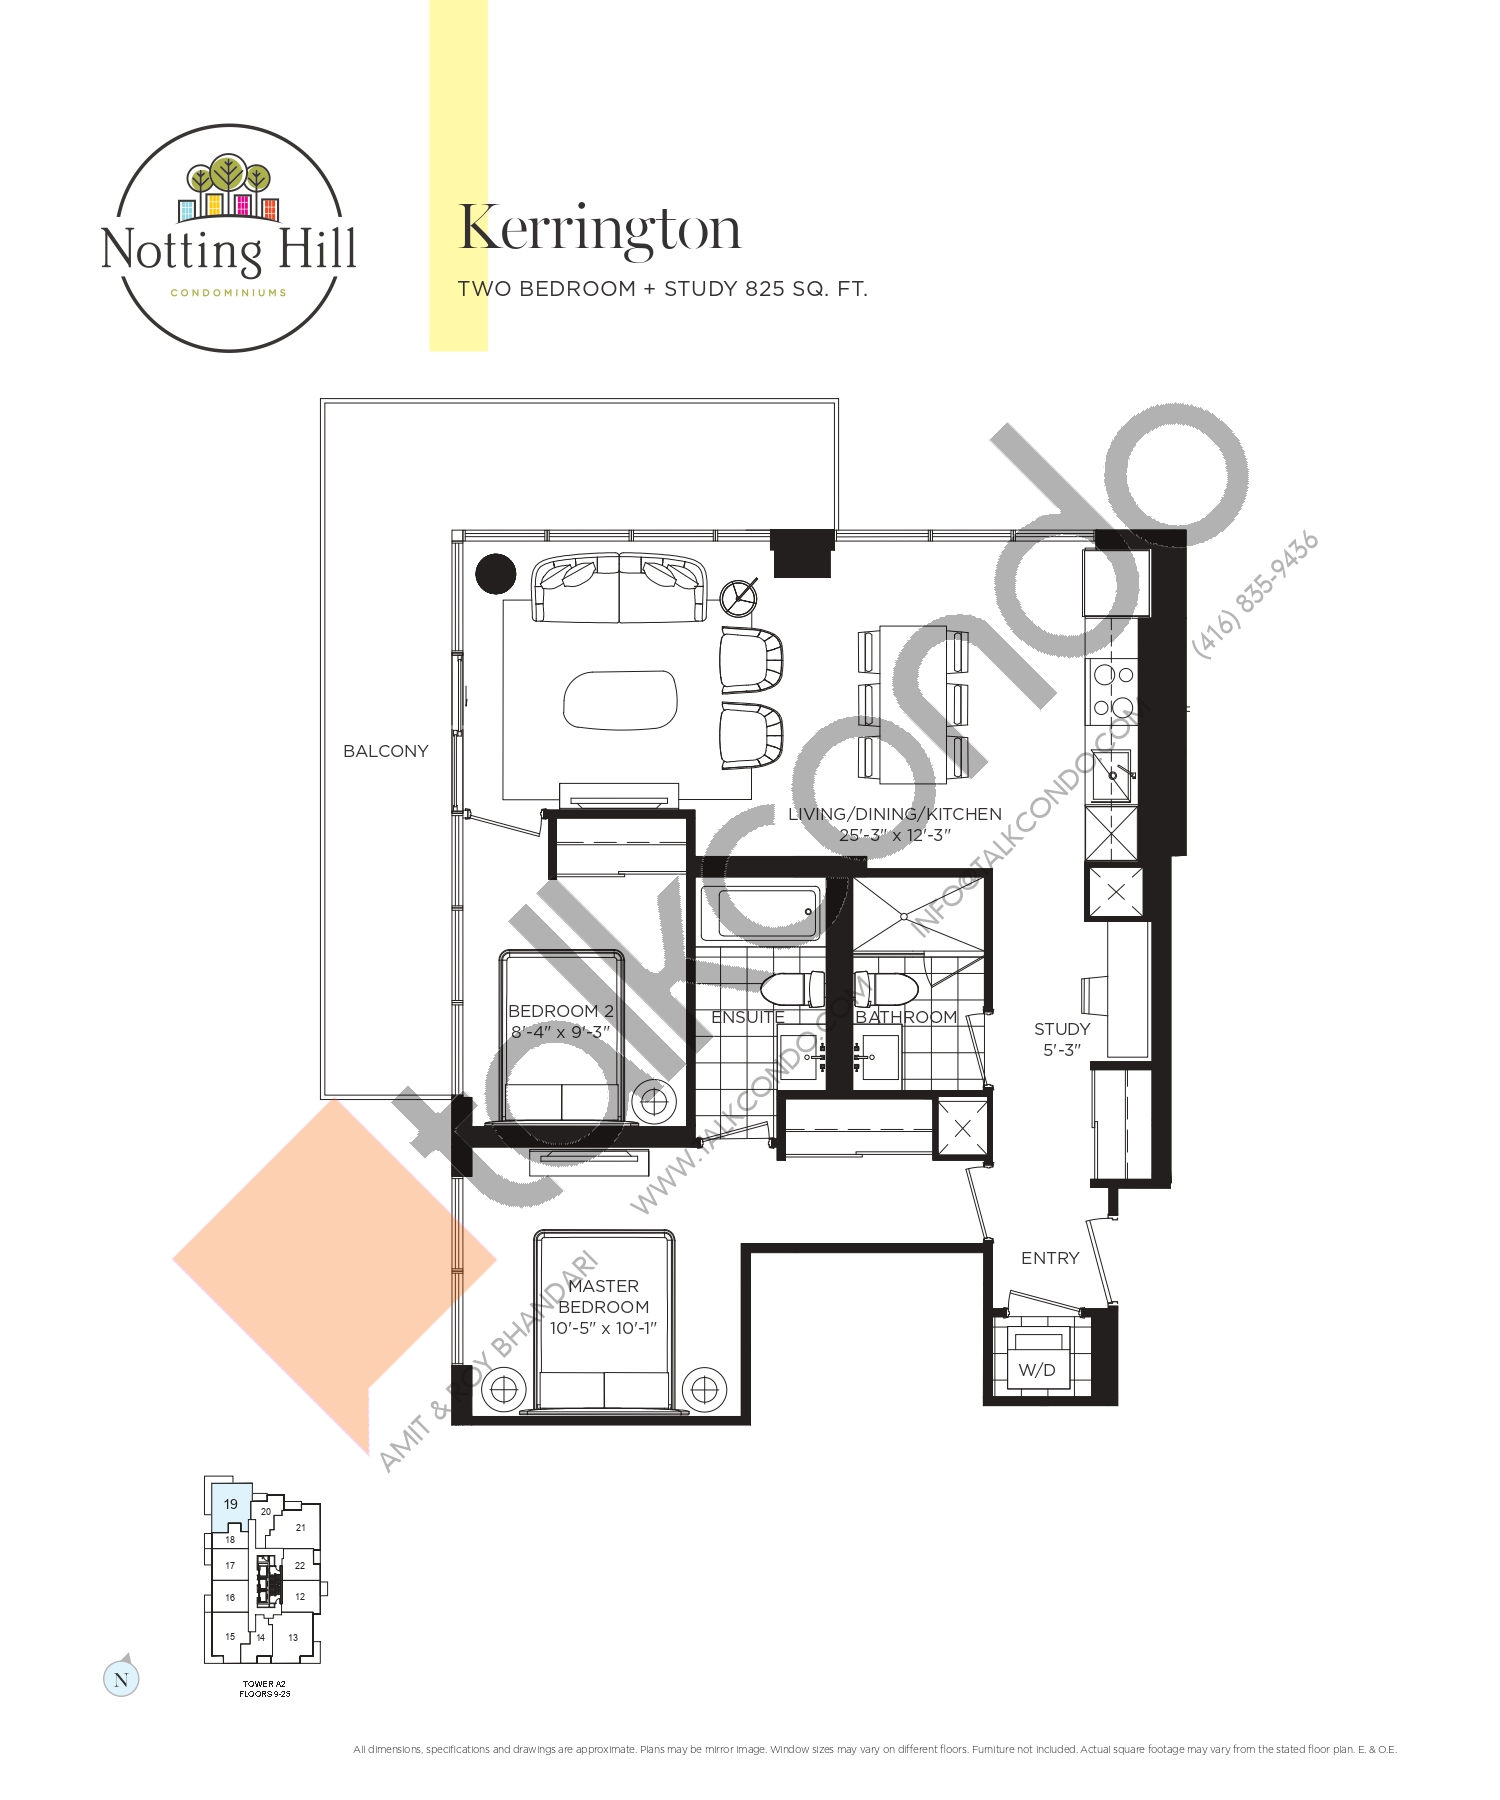 Kerrington Floor Plan at Notting Hill Phase 2 Condos - 825 sq.ft